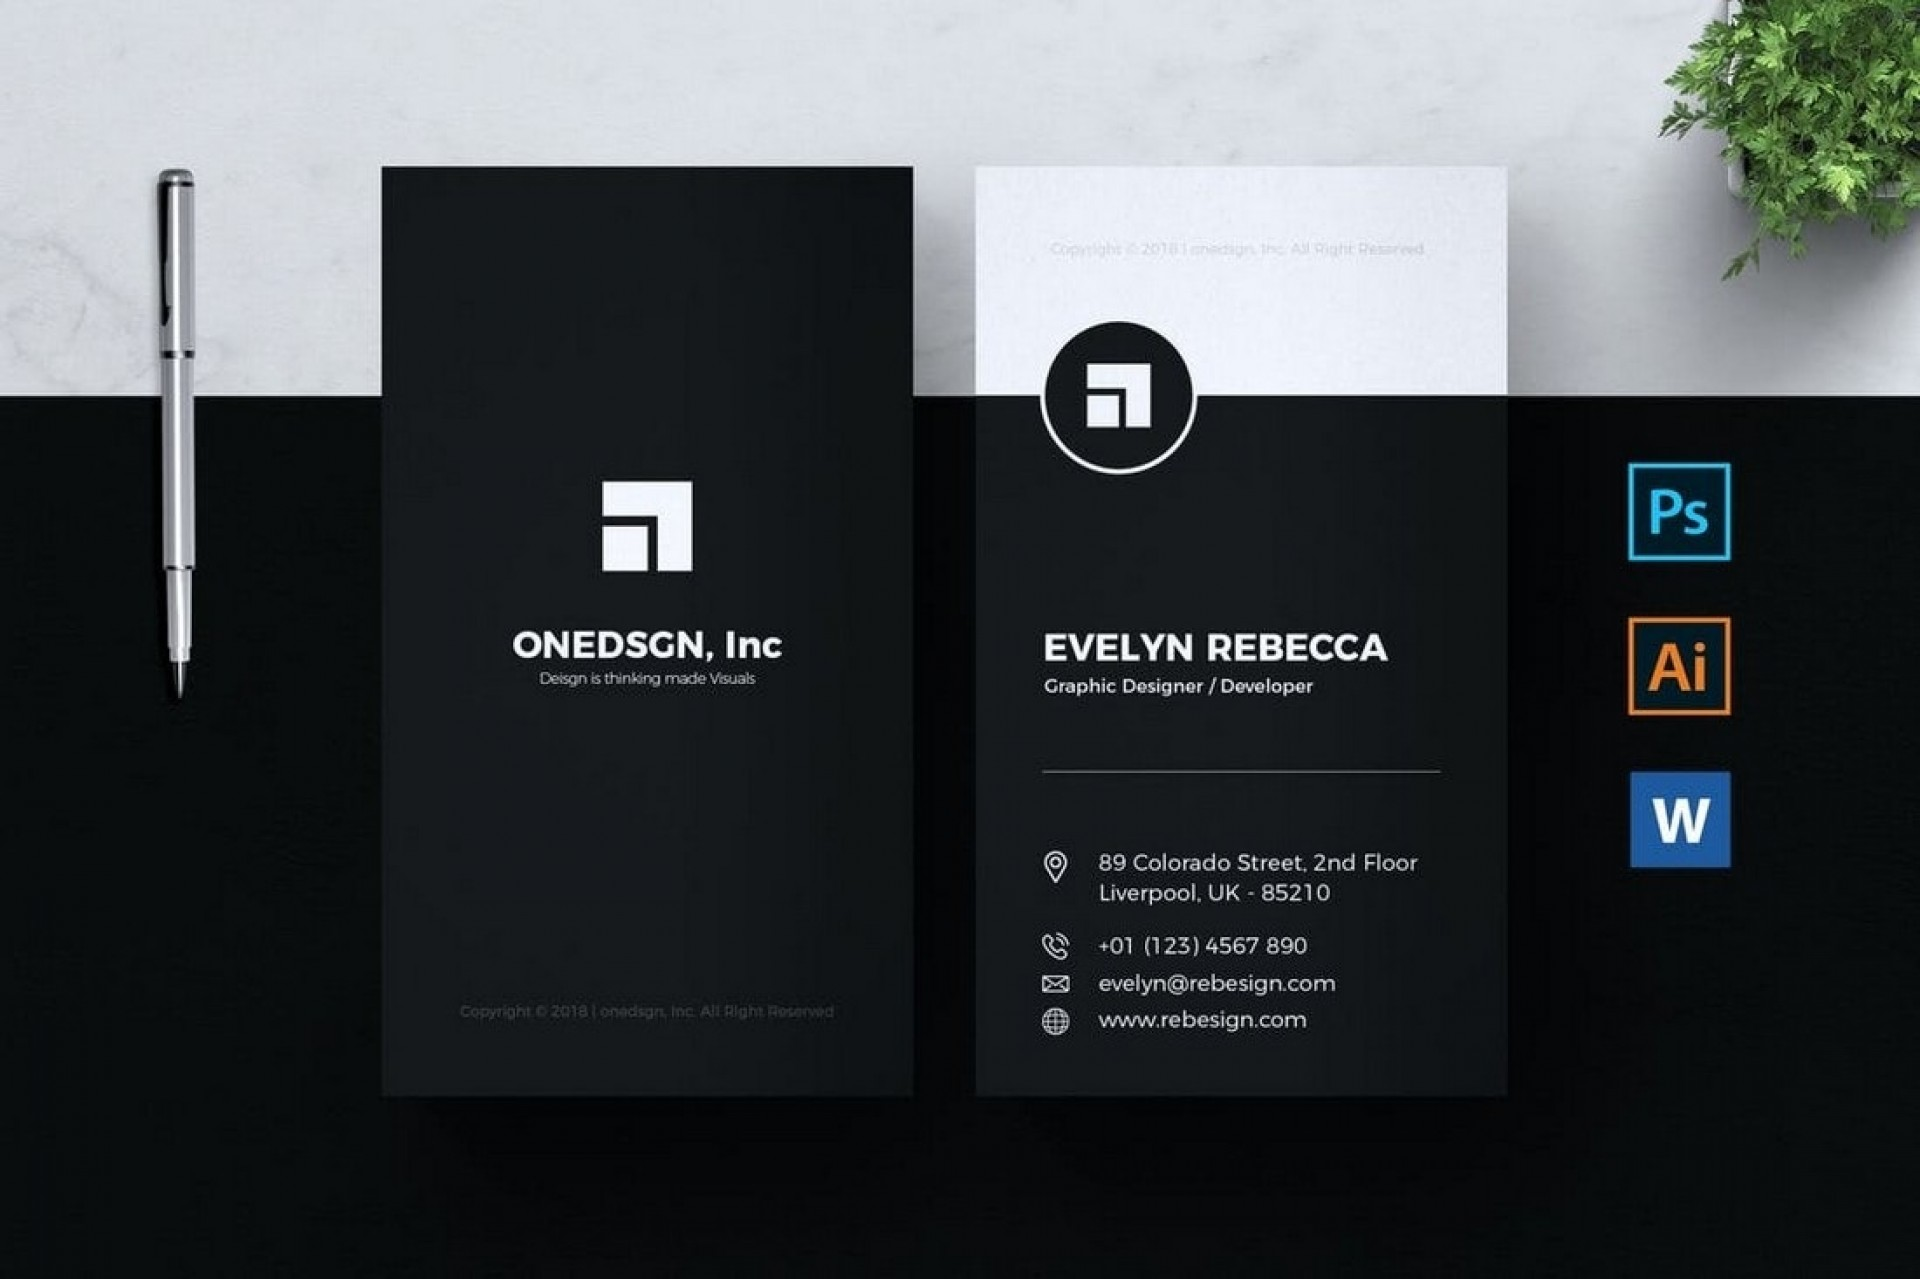 004 Impressive Free Busines Card Design Template Example  Templates Visiting Download Psd Photoshop1920